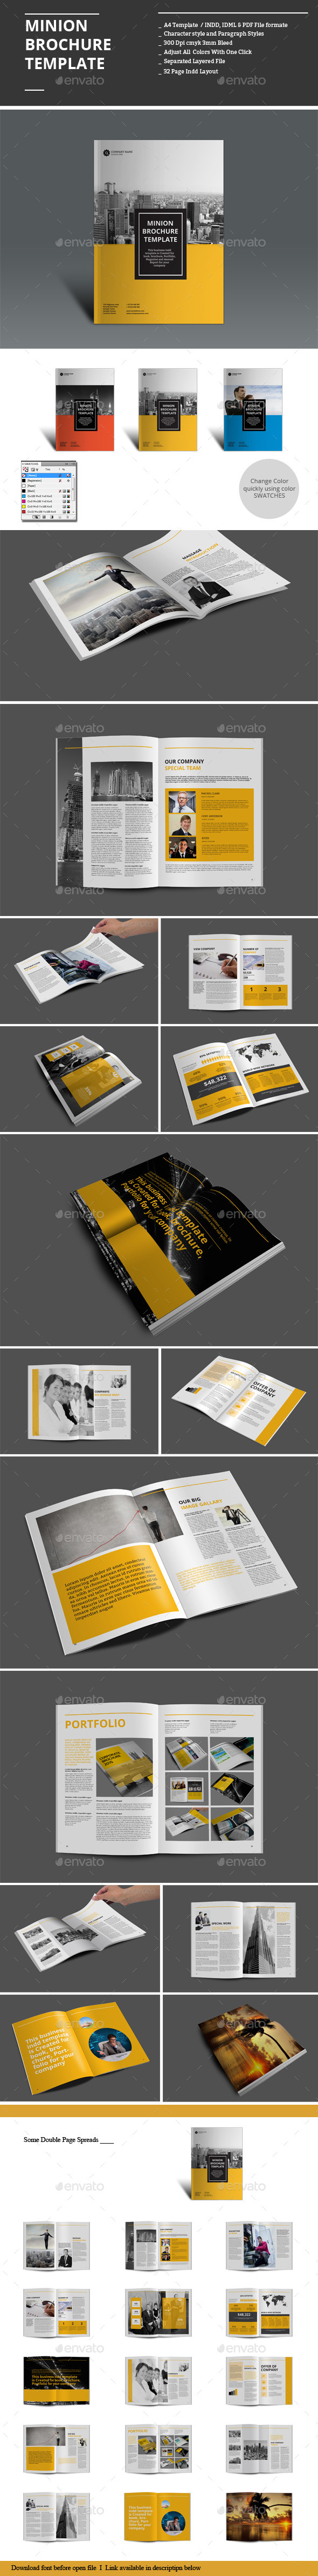 GraphicRiver Minion Brochure Templates 8920907